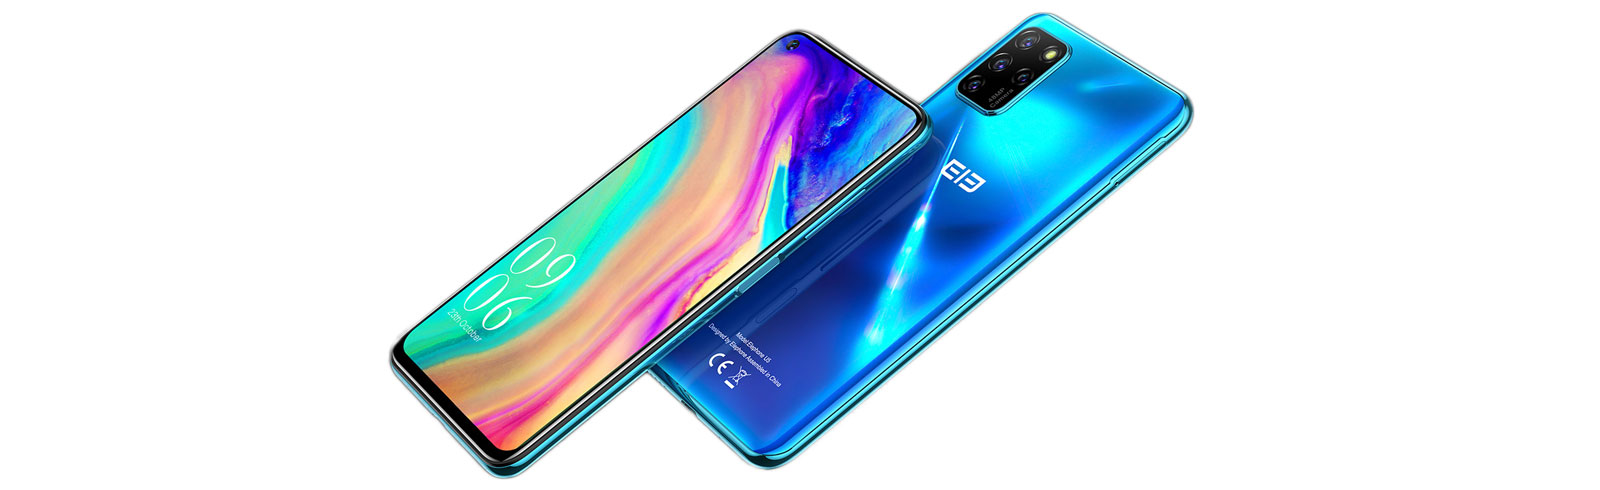 """Elephone U5 is announced with a 6.4"""" FHD+ display, 48MP camera, Helio P60 chipset"""